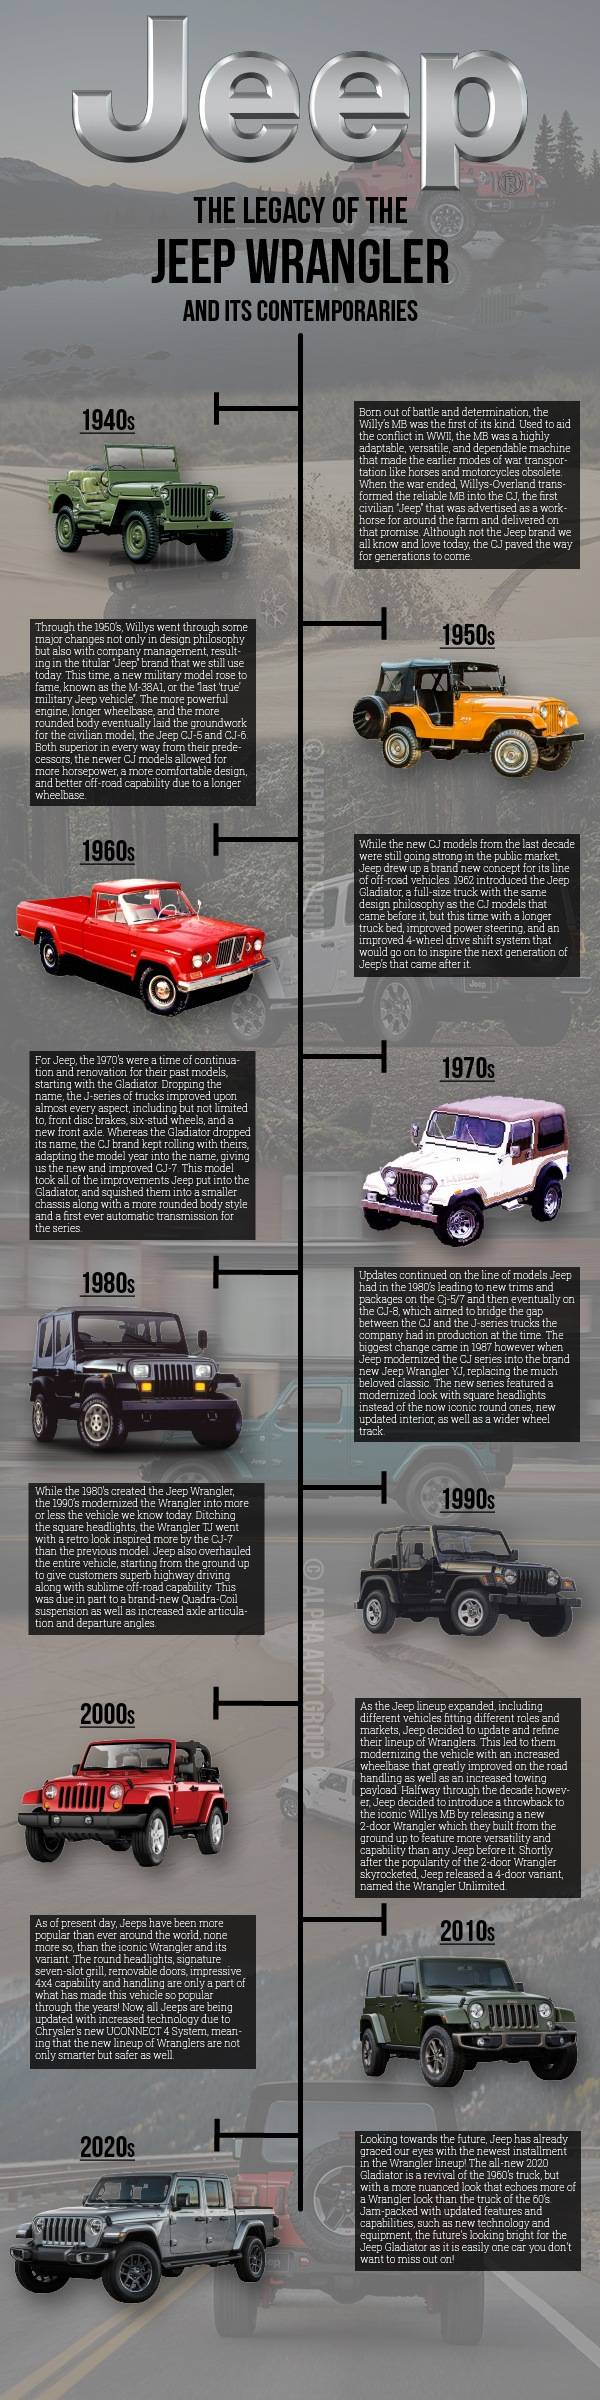 The Legacy of the Jeep Wrangler and its Contemporaries